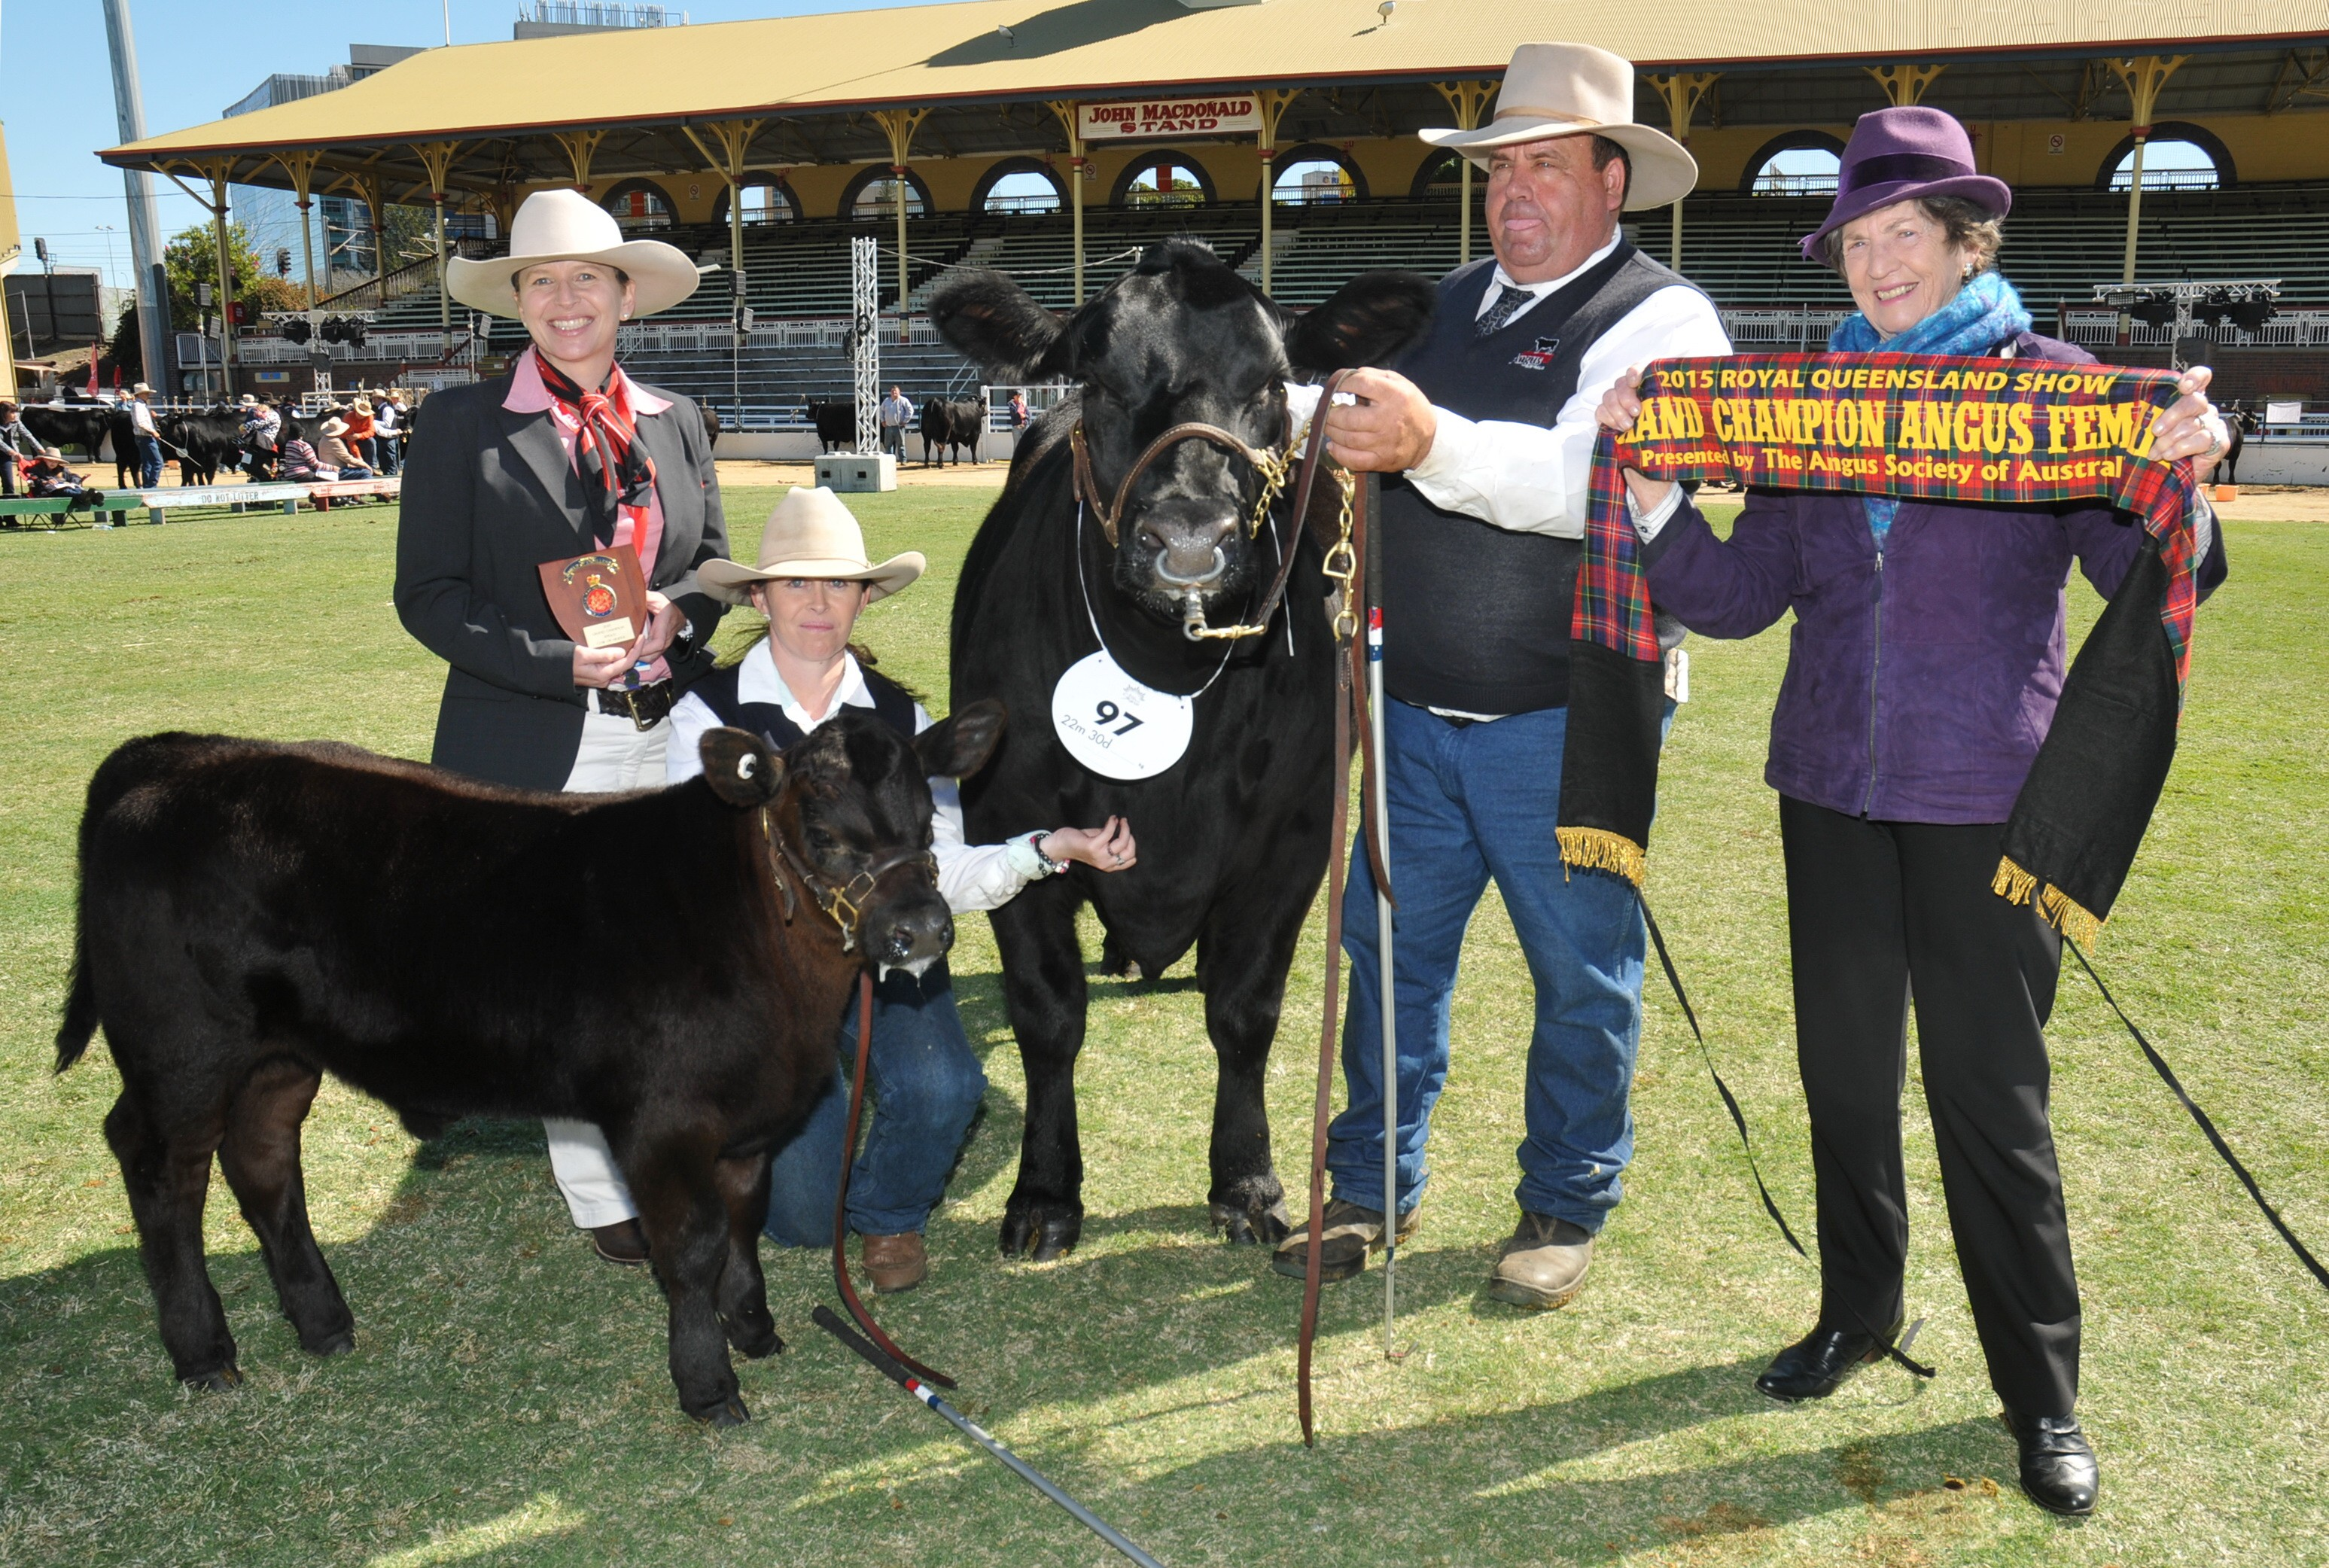 EKKA 2015 Grand Champion Angus Female